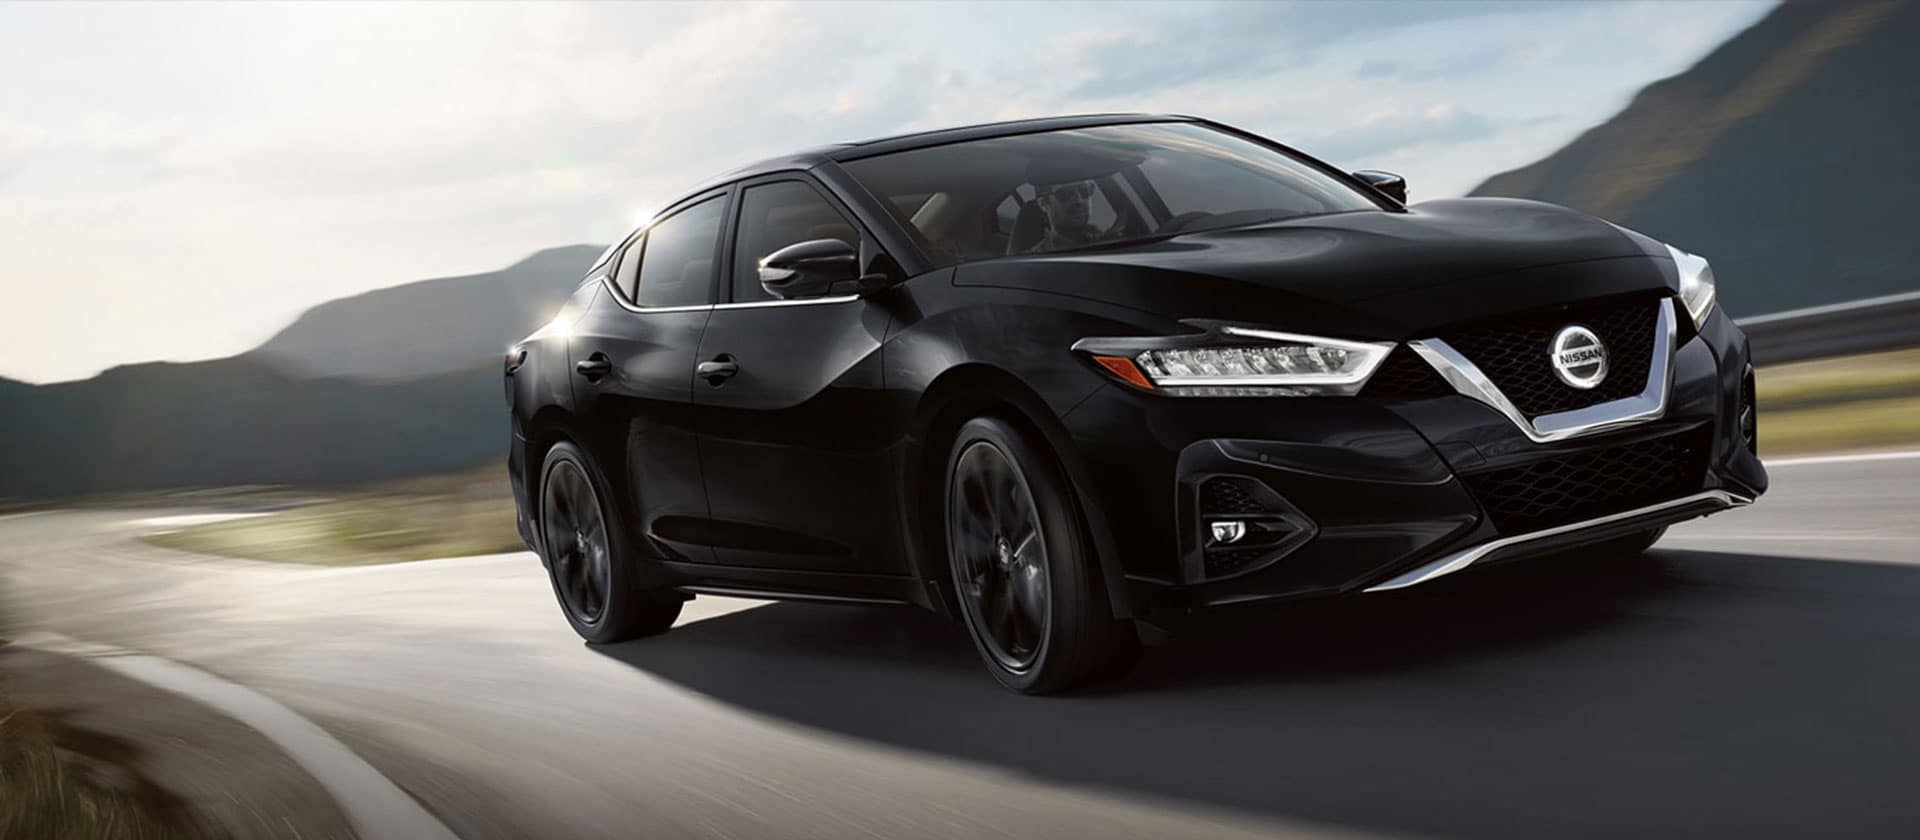 2020 Nissan Maxima in Shelbyville Tennessee